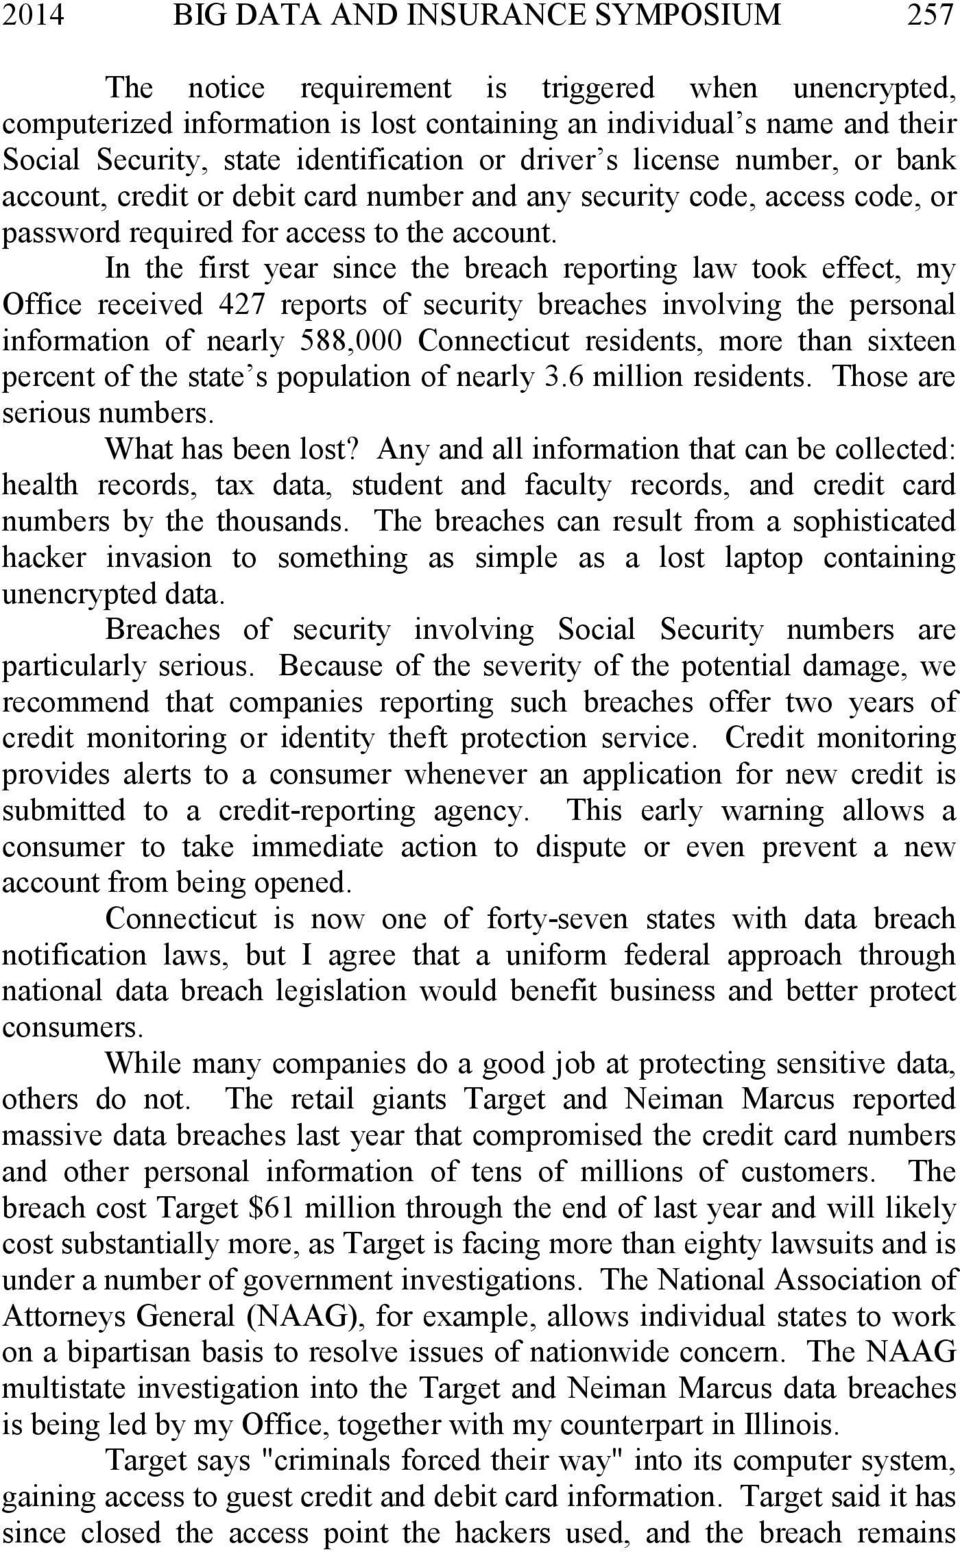 In the first year since the breach reporting law took effect, my Office received 427 reports of security breaches involving the personal information of nearly 588,000 Connecticut residents, more than